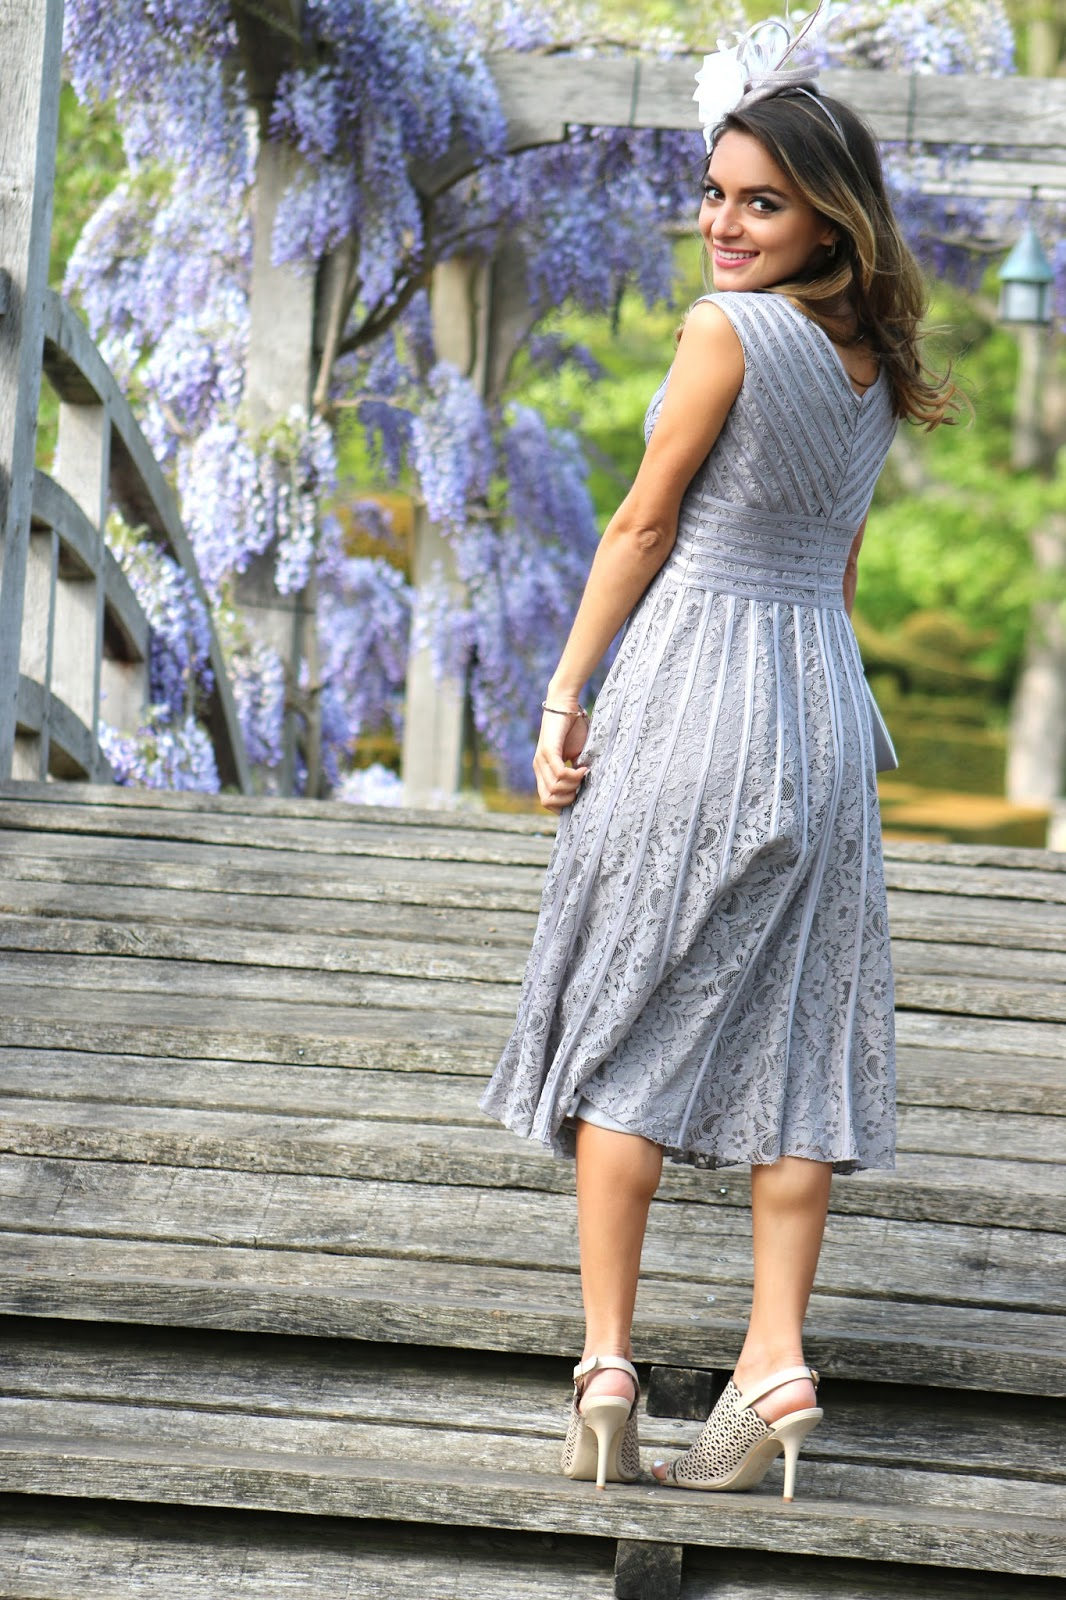 5 TIPS TO ACHIEVE THE PERFECT WEDDING GUEST OUTFIT   Whitneys Wonderland